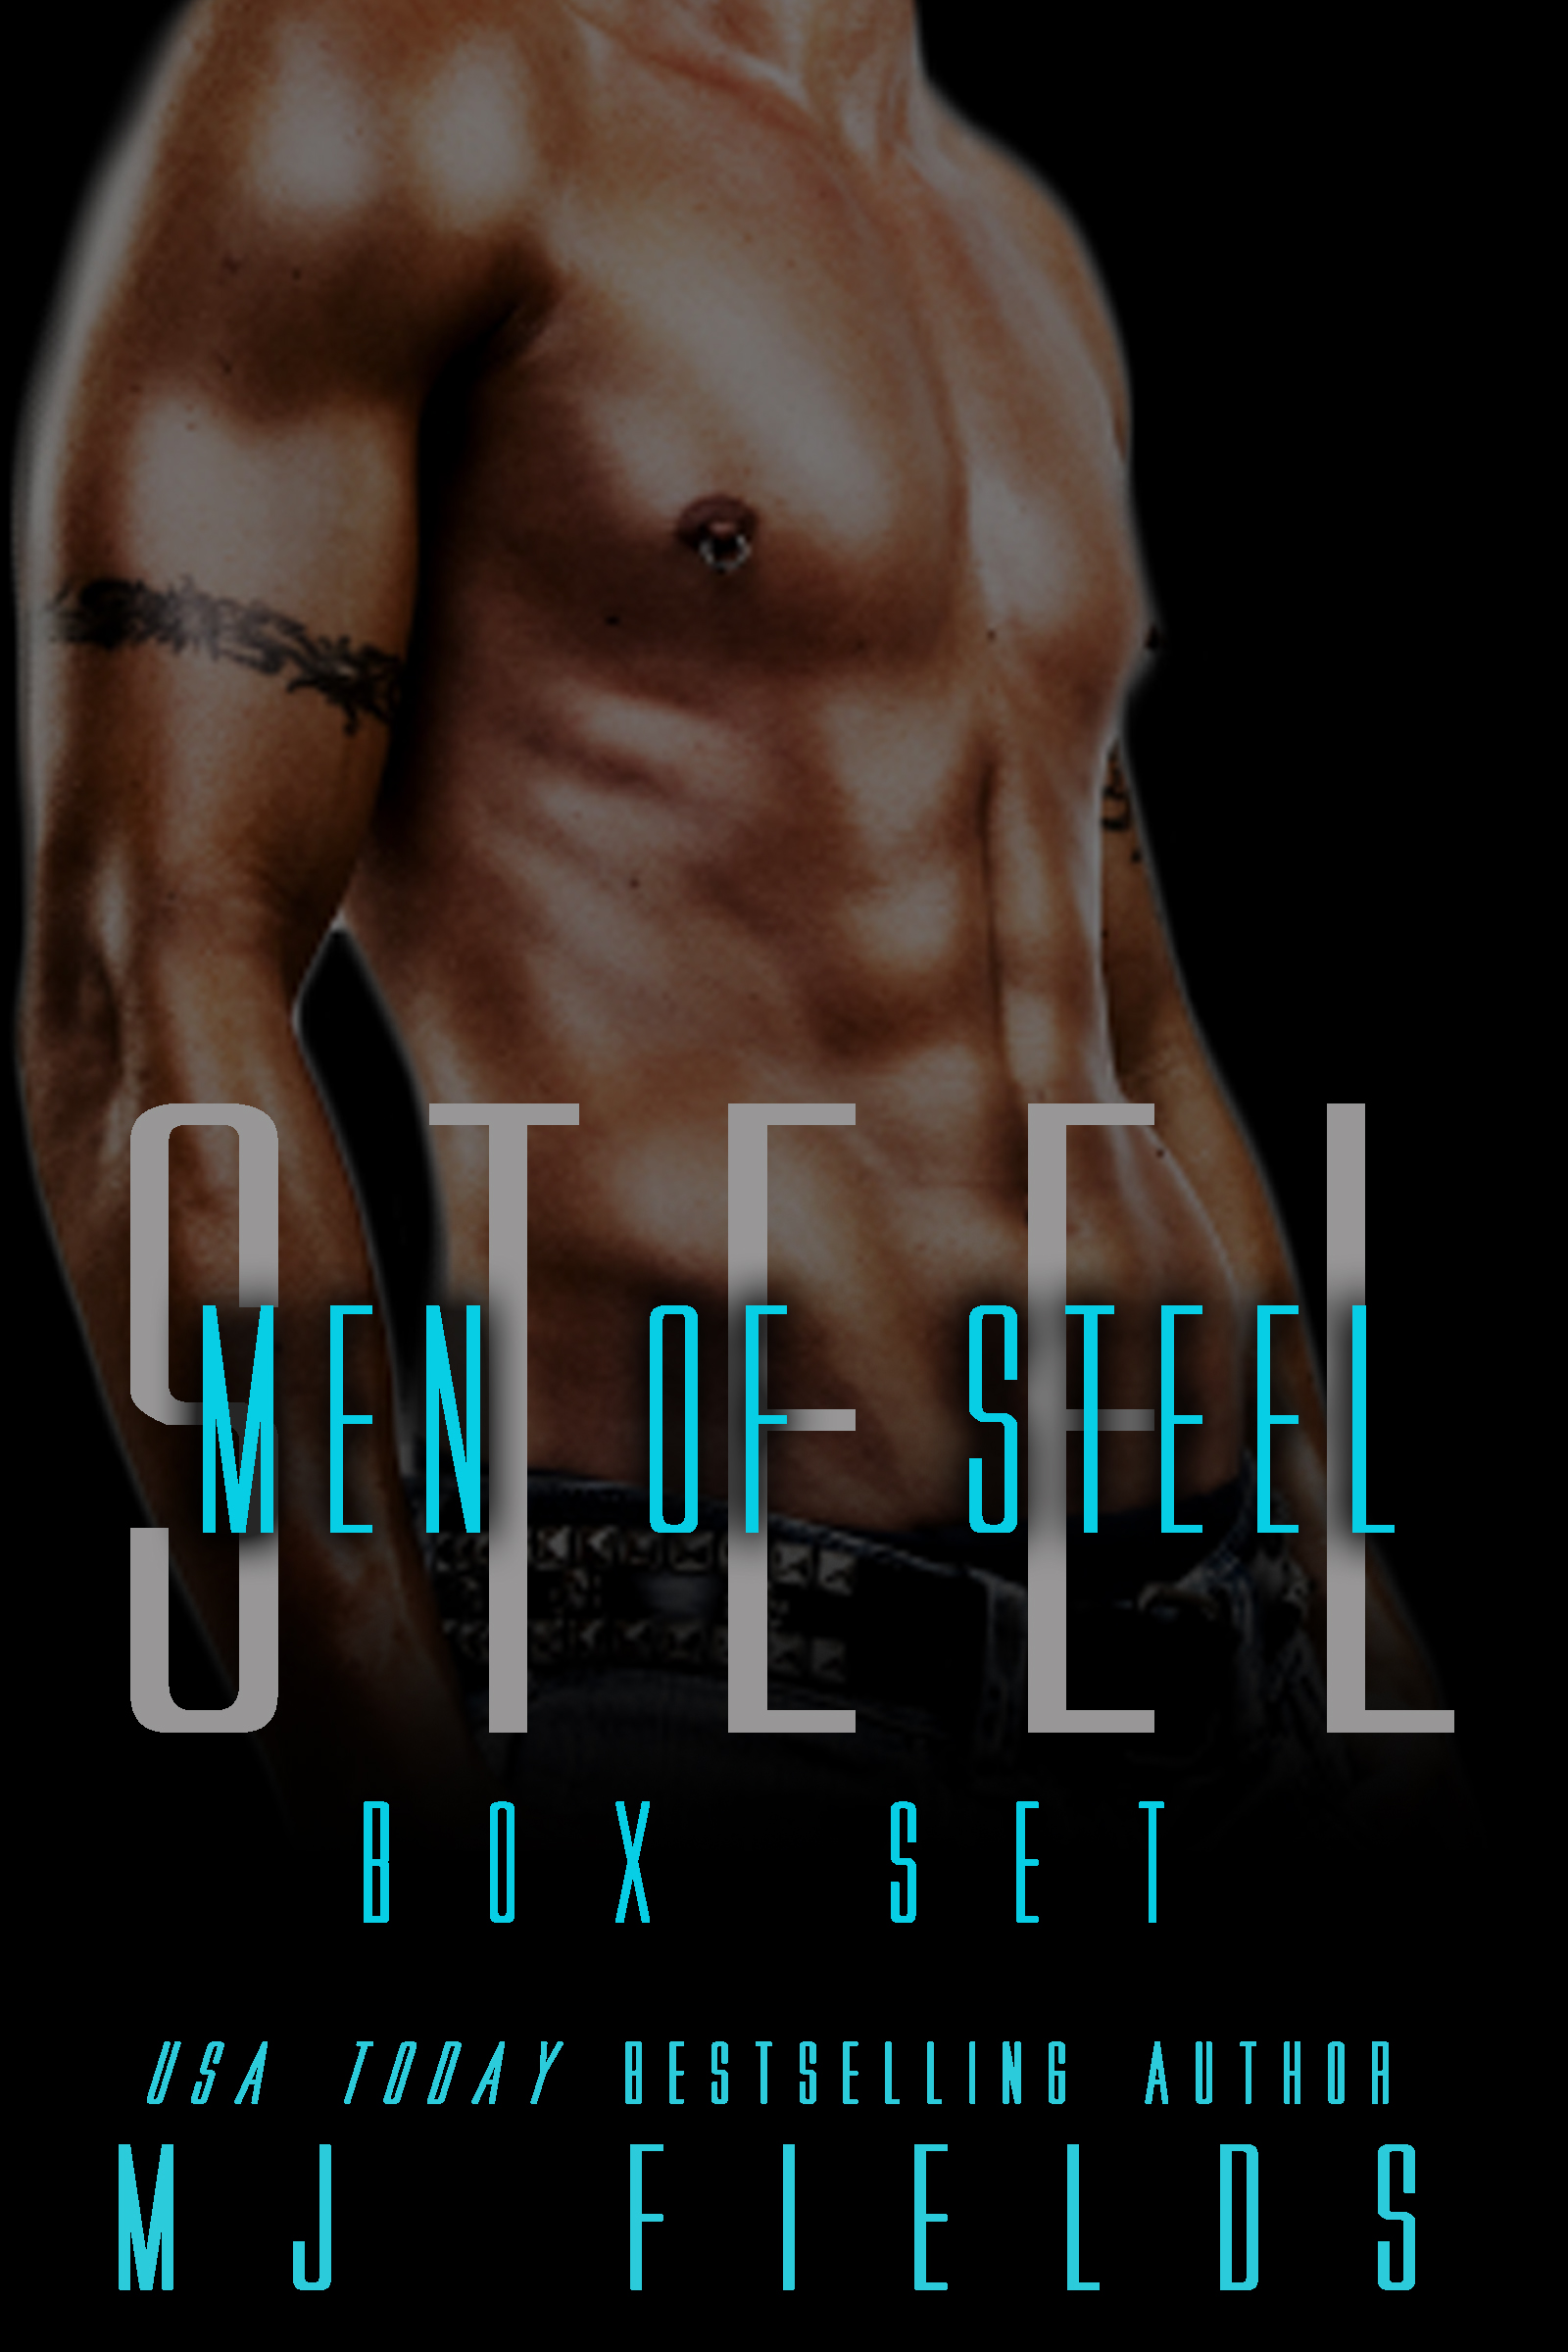 The Men Of Steel Box Set is ON SALE plus a GIVEAWAY!